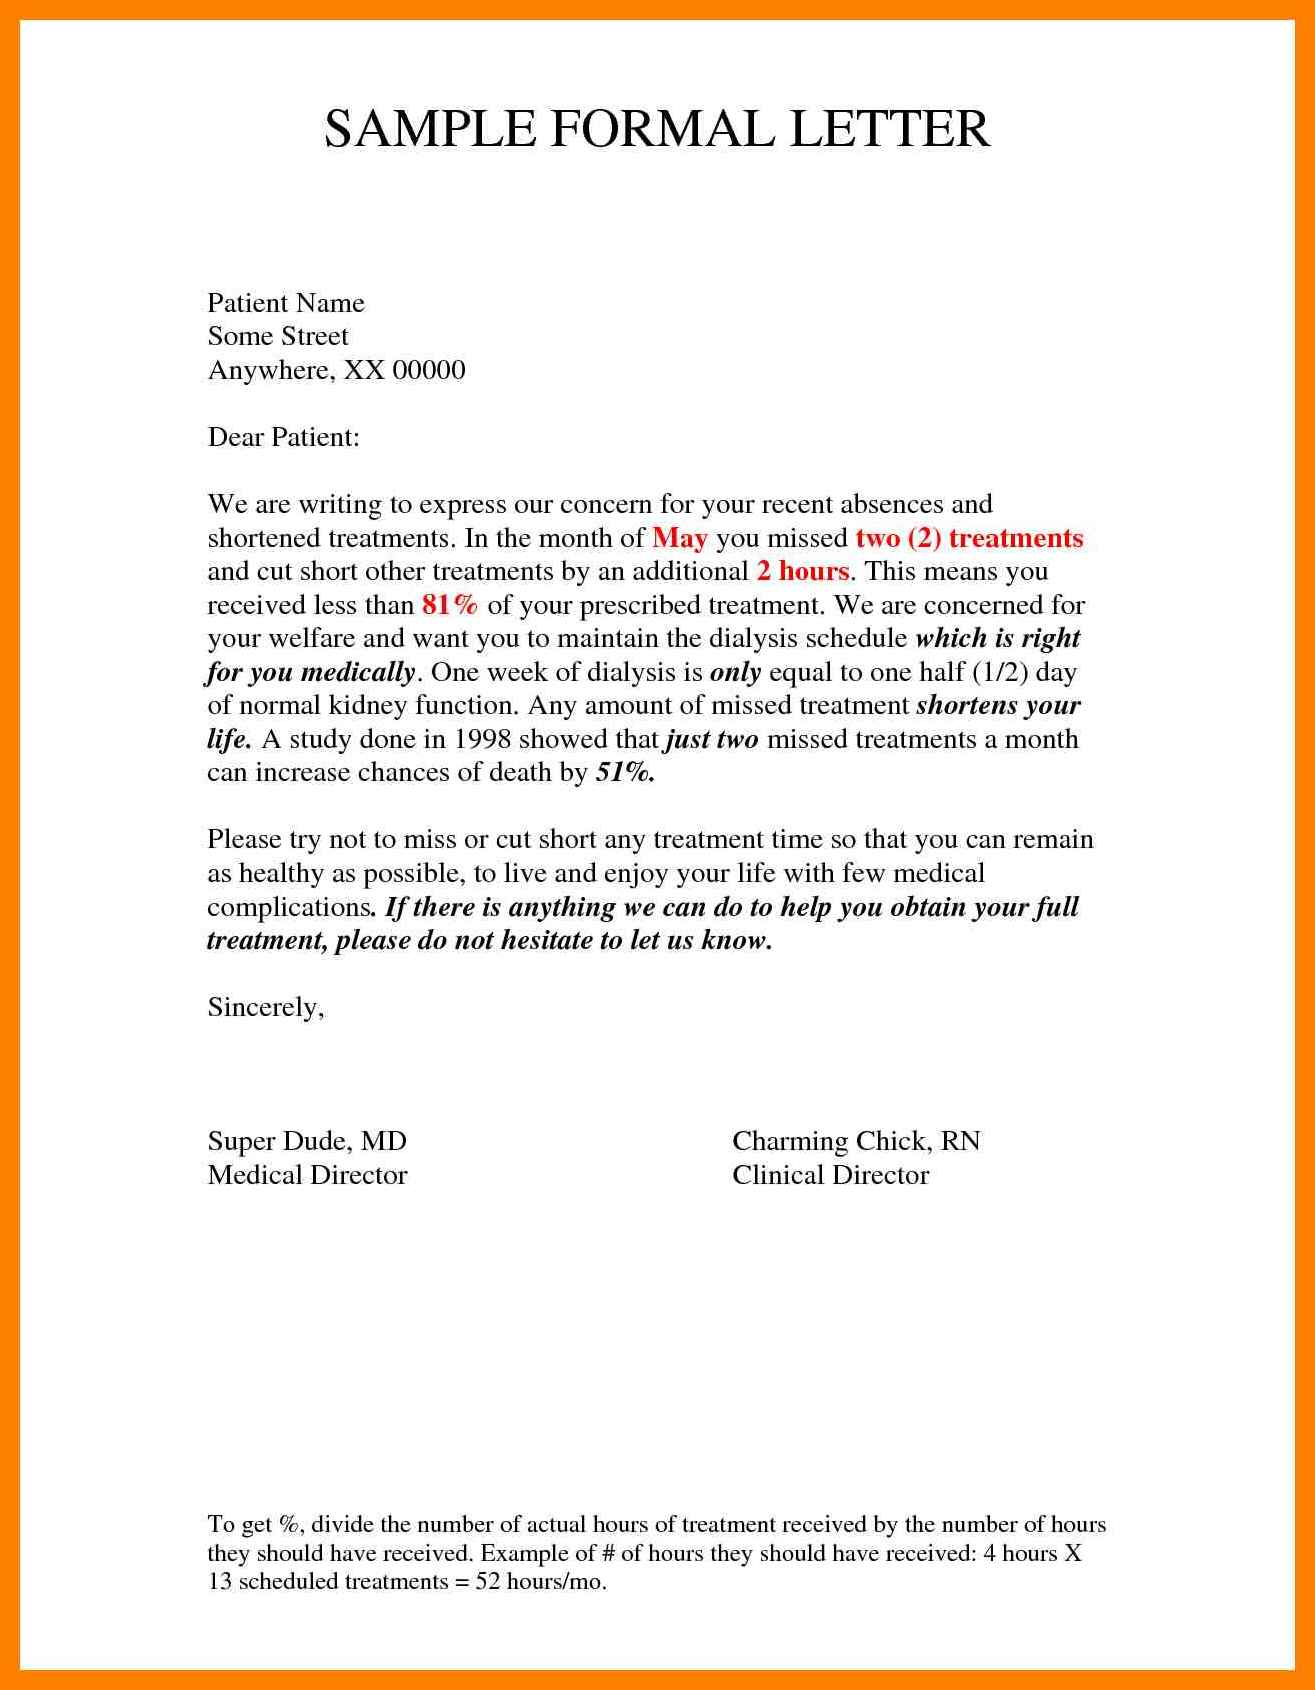 Sample-Formal-Letter Official Letter Format Example on military official, business person, job application, proper corporate, legal business,